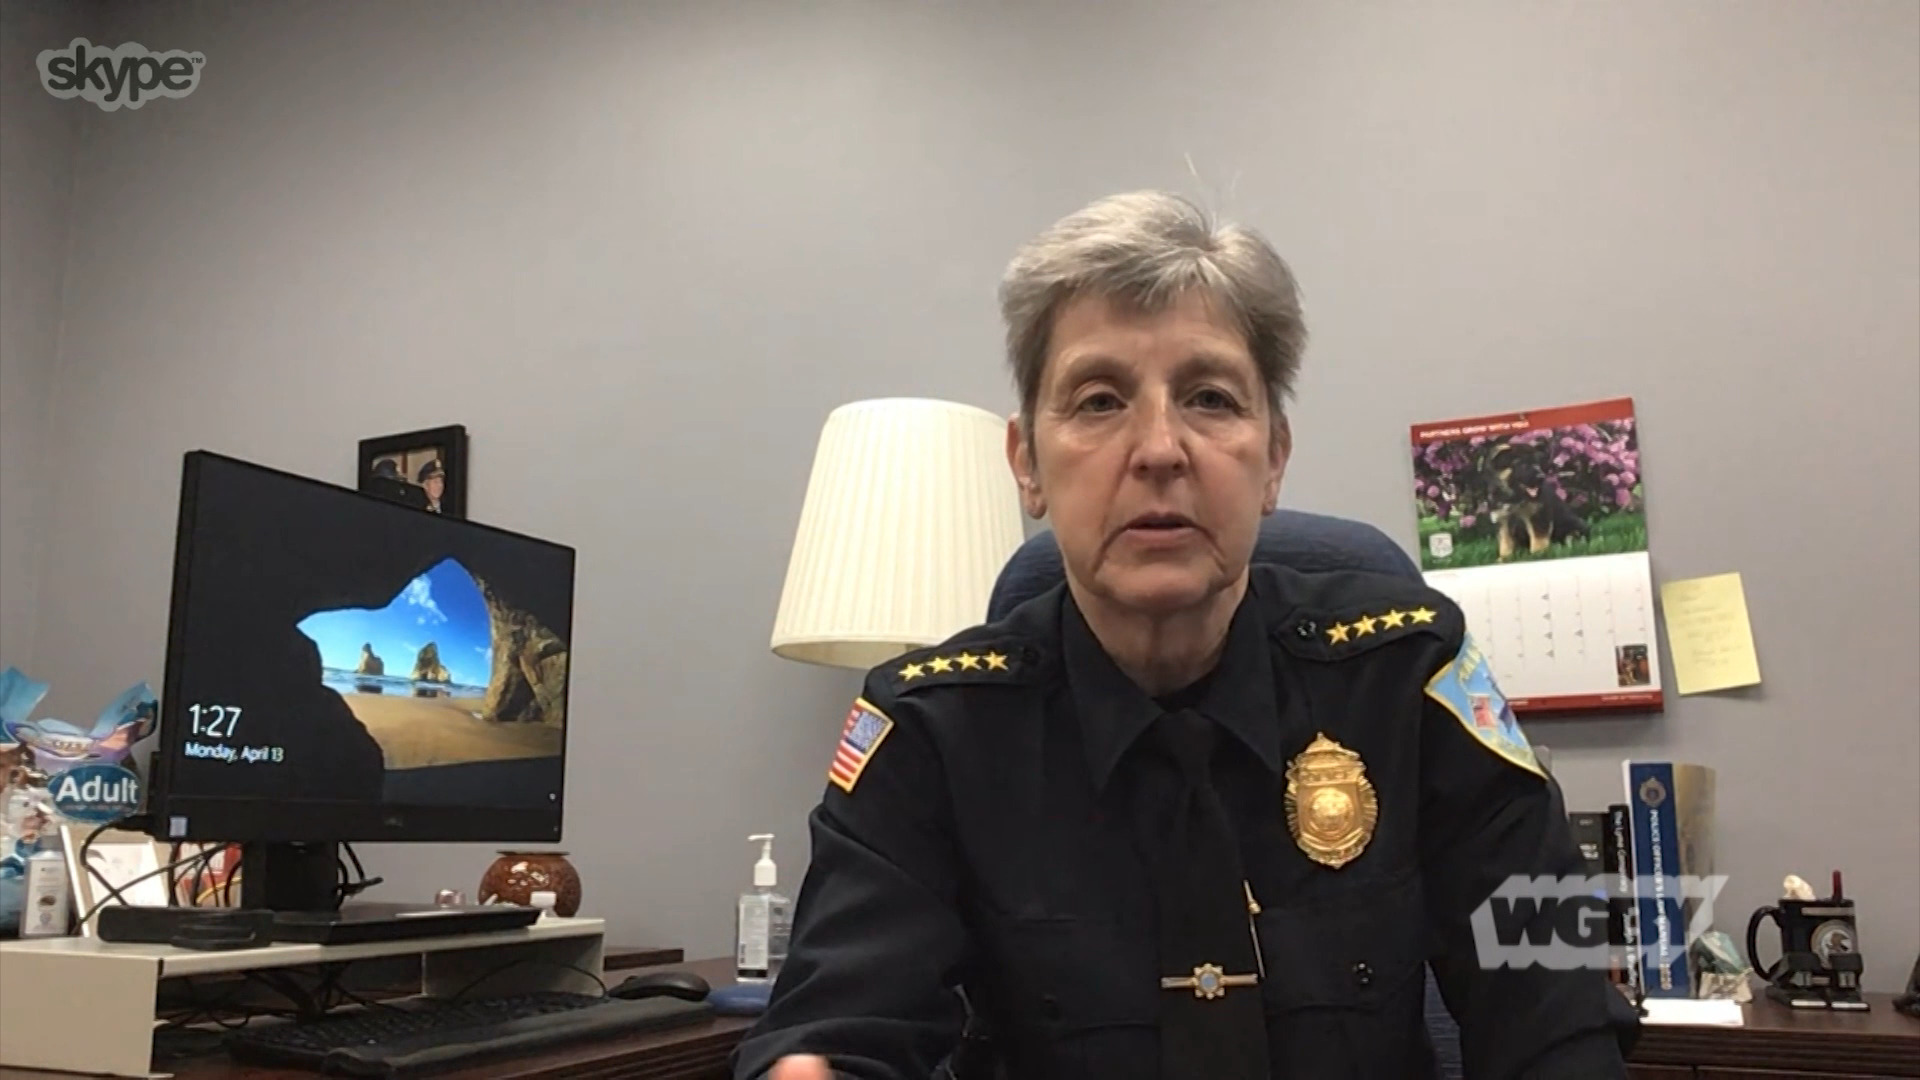 Springfield Police Commissioner Clapprood shares how her officers are going above and beyond to ensure public safety as western Mass battles the COVID-19.